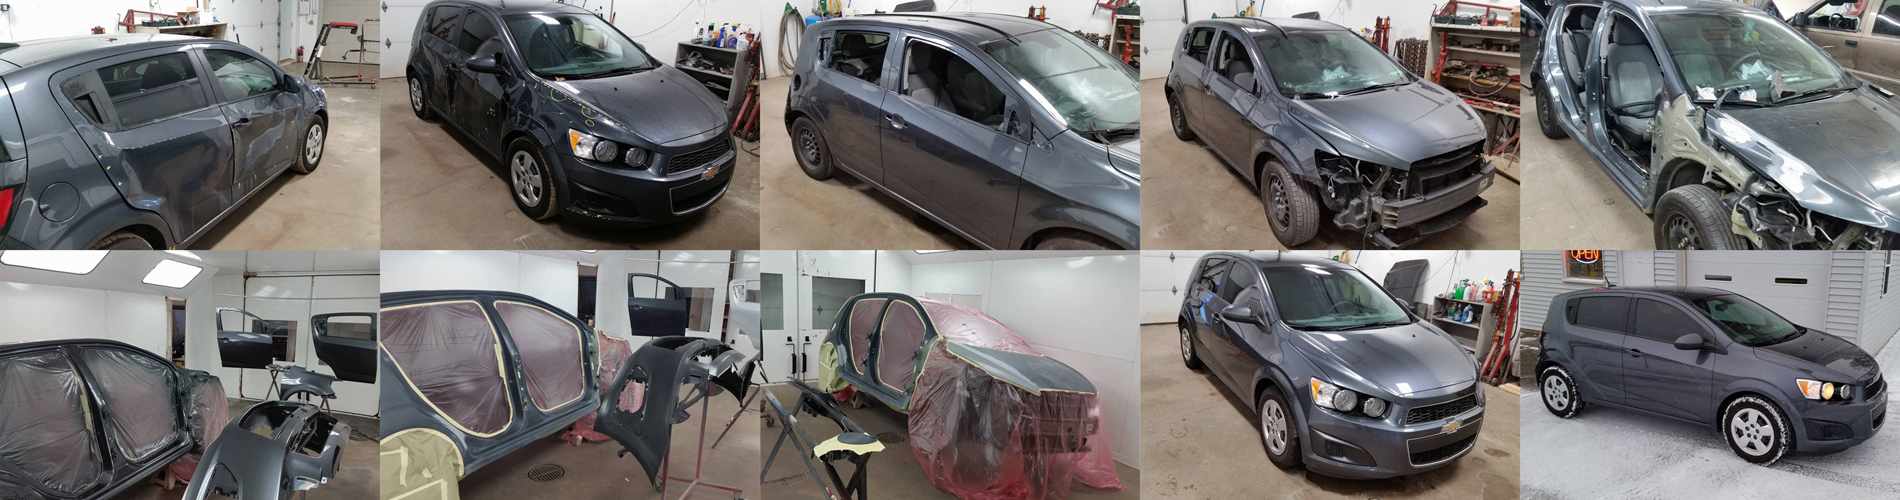 Southside Paint And Body >> Collision Services Chad Miller S Southside Auto Body